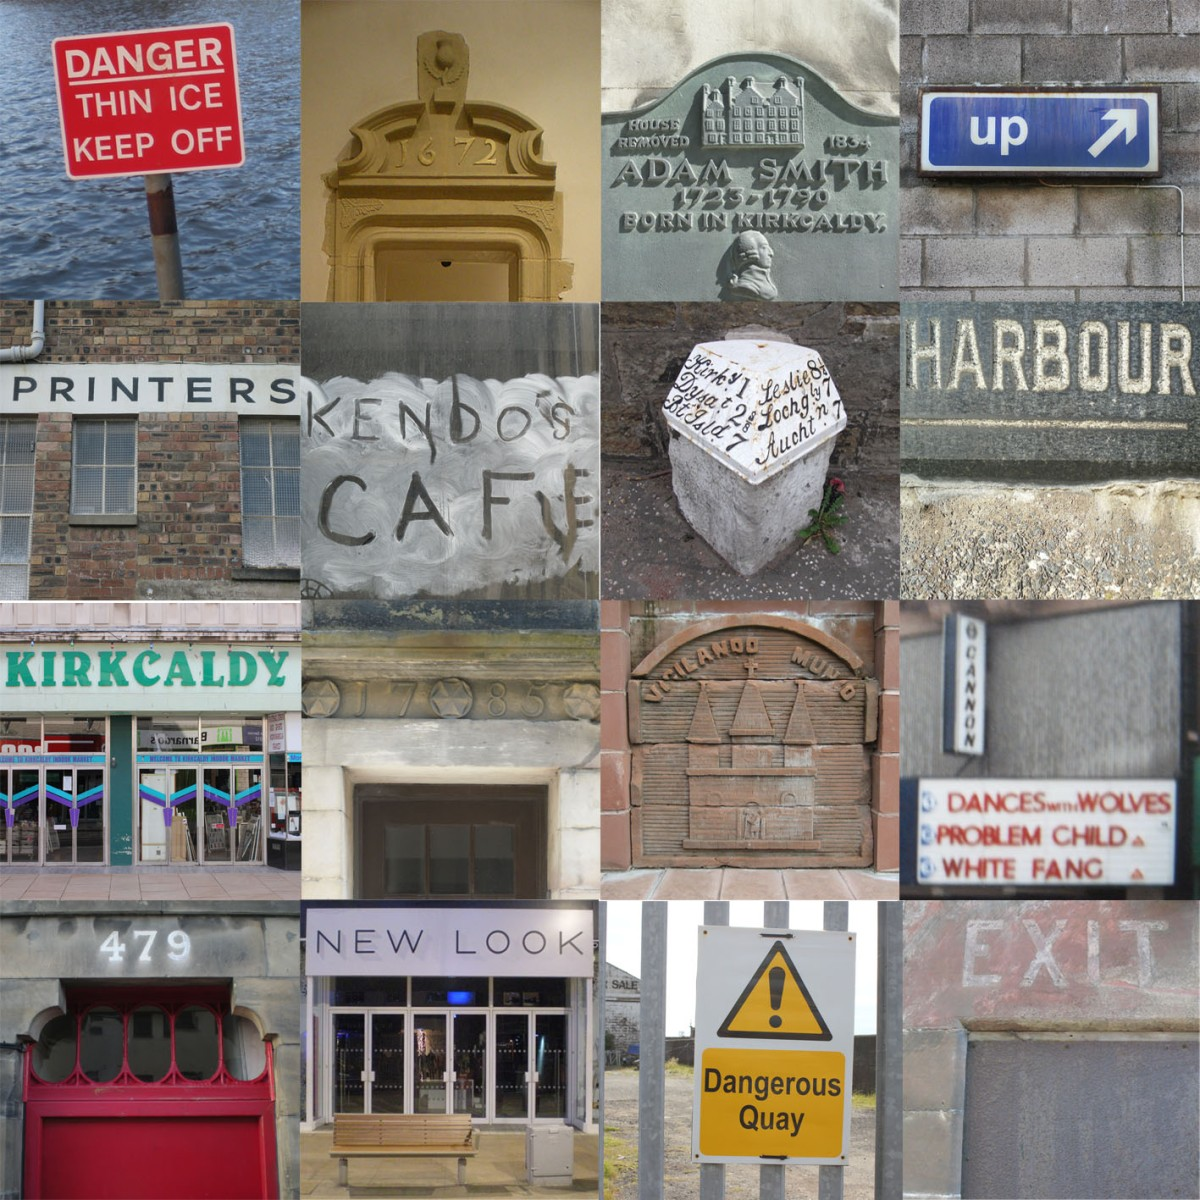 SIGNS TELL STORIES TOO